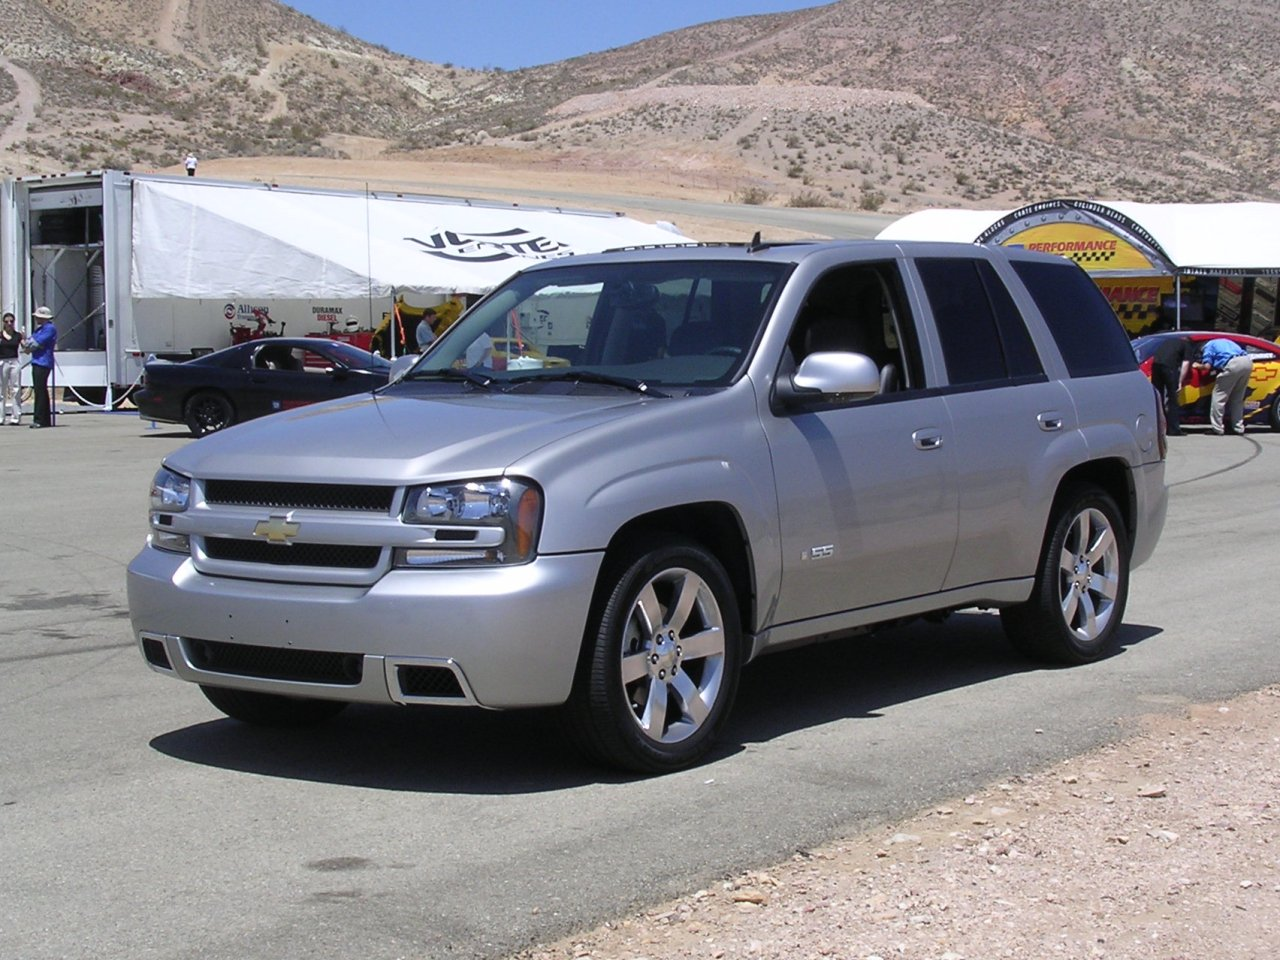 Chevrolet trailblazer 2012 photo - 4